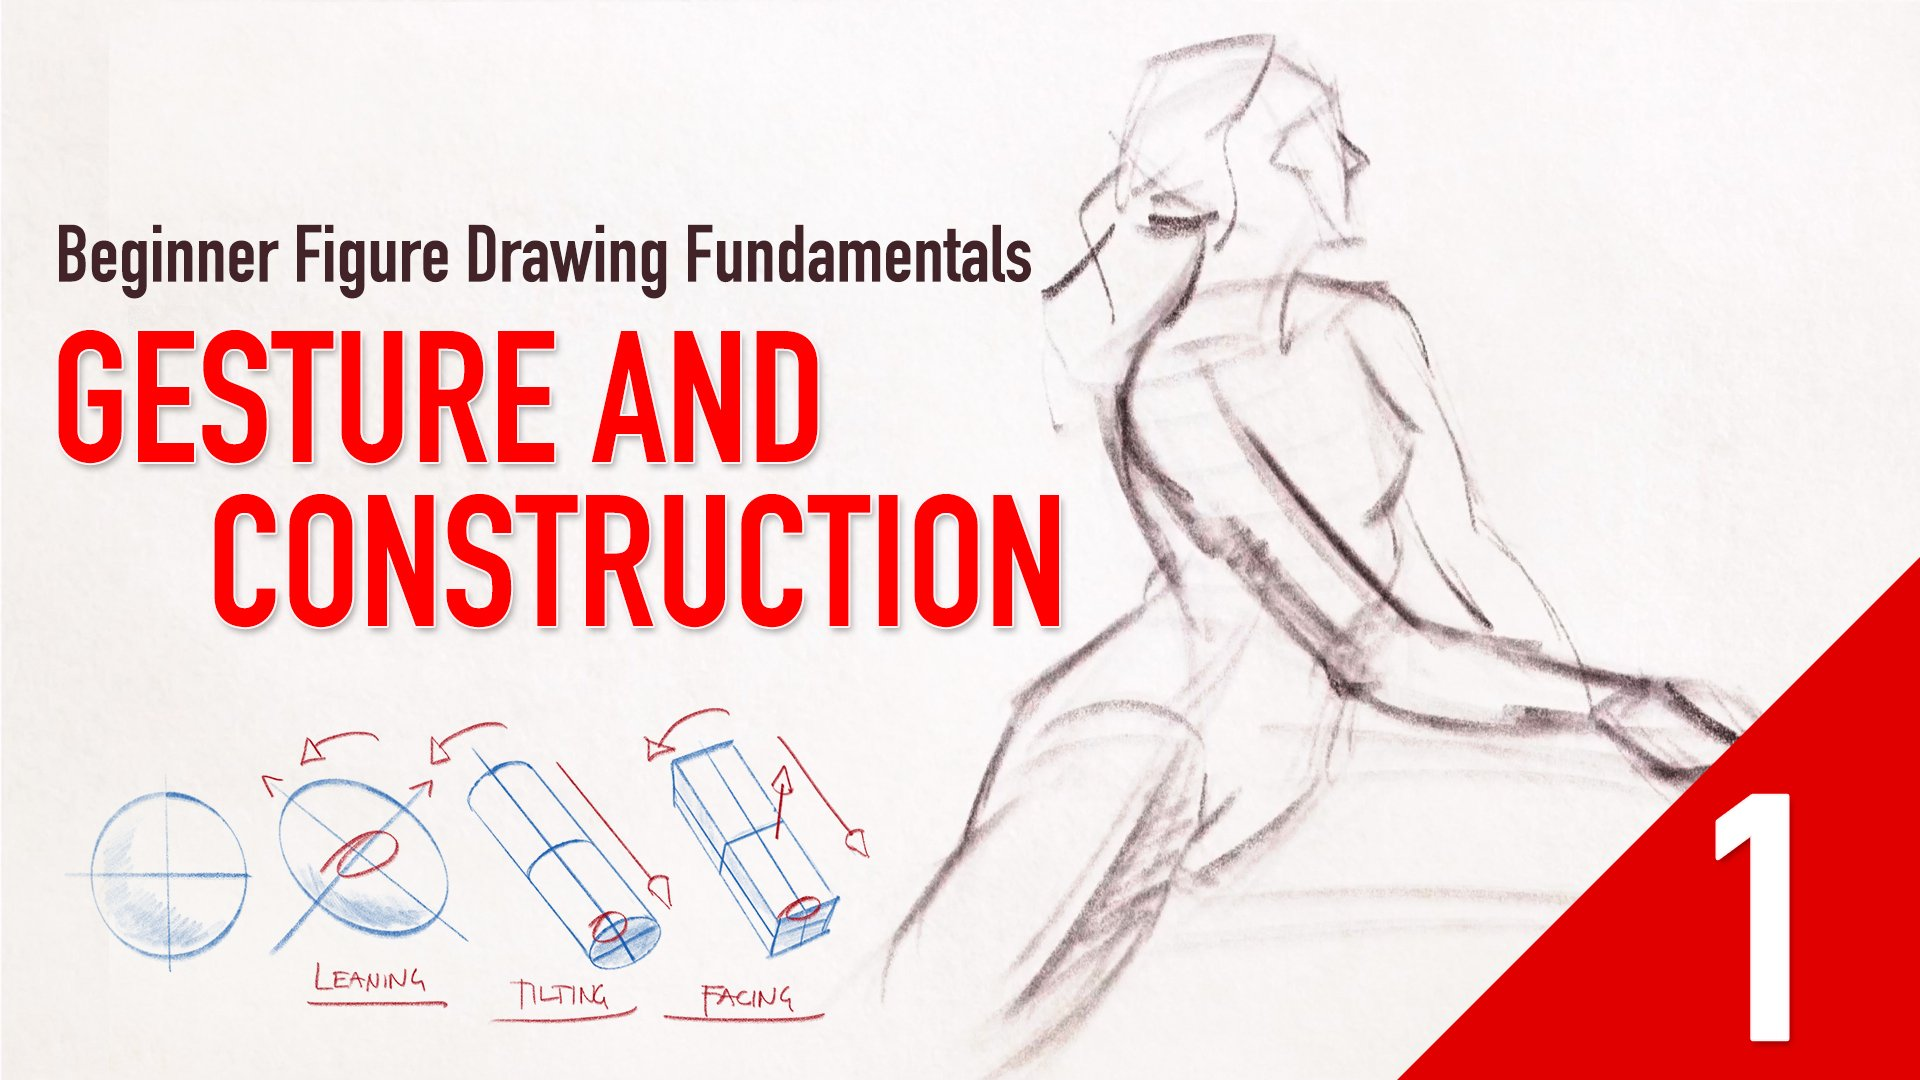 Beginner Figure Drawing Fundamentals  - Gesture and Construction